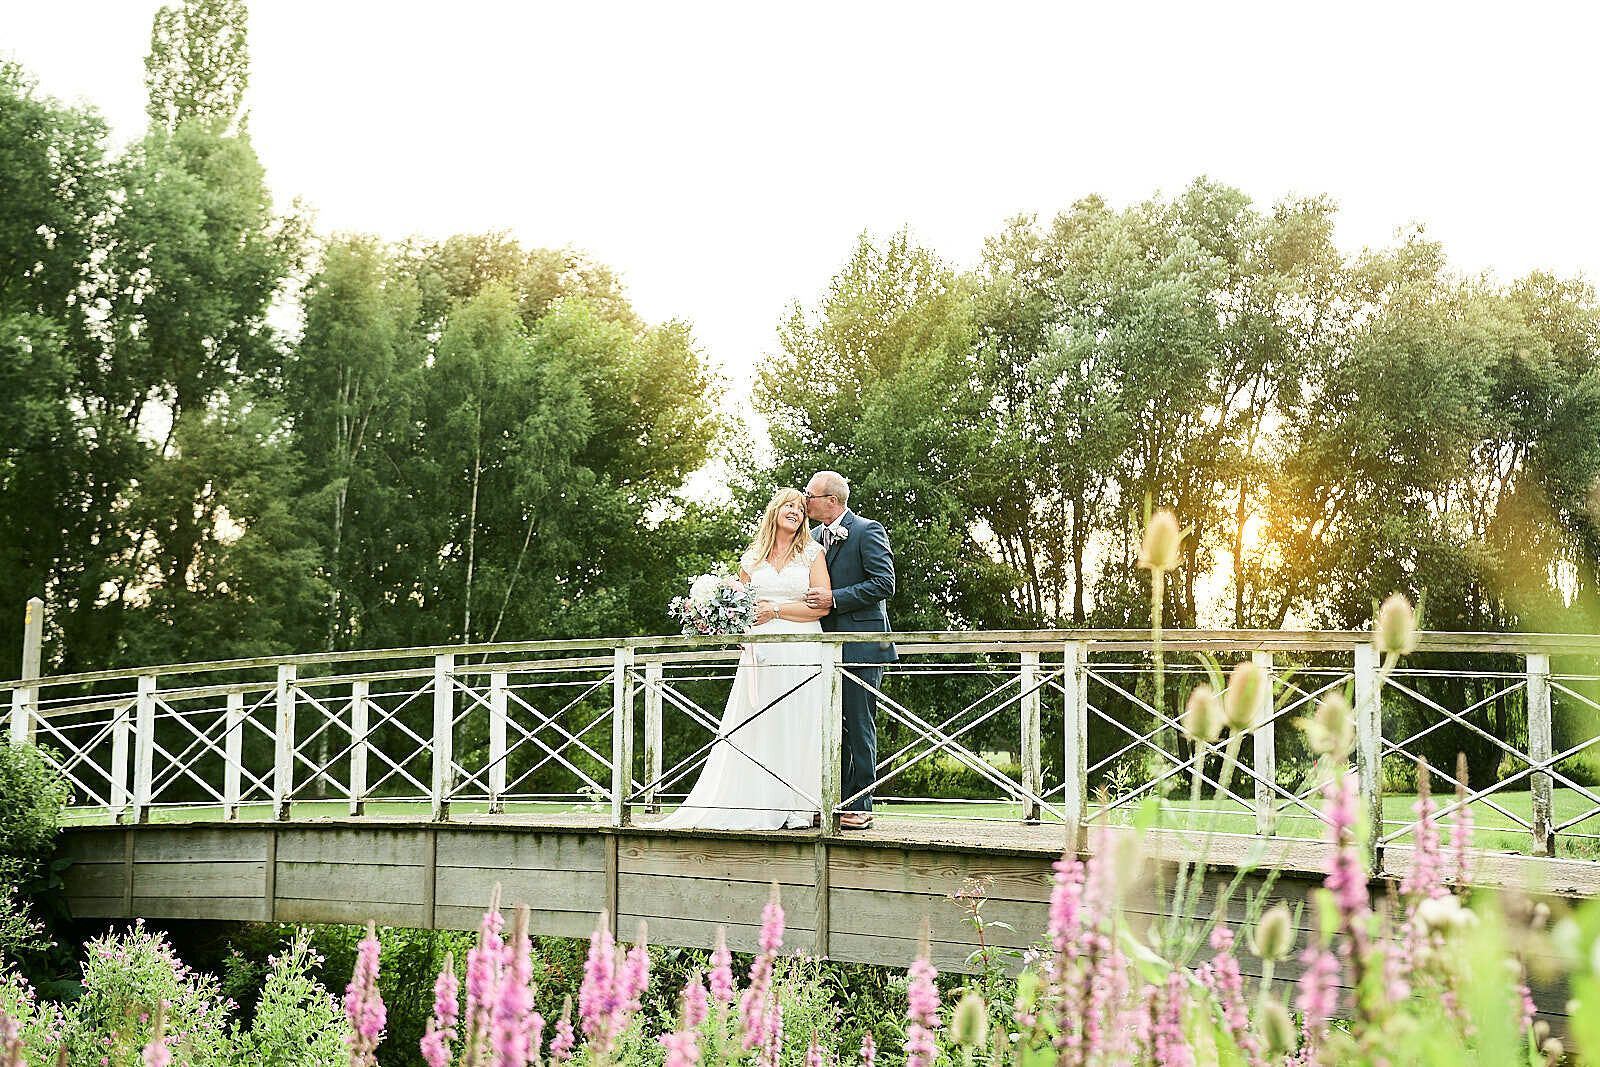 bride and groom share cuddle on bridge at sunset at All Saints Hotel, Suffolk by Norfolk Wedding Photographer Faye Amare